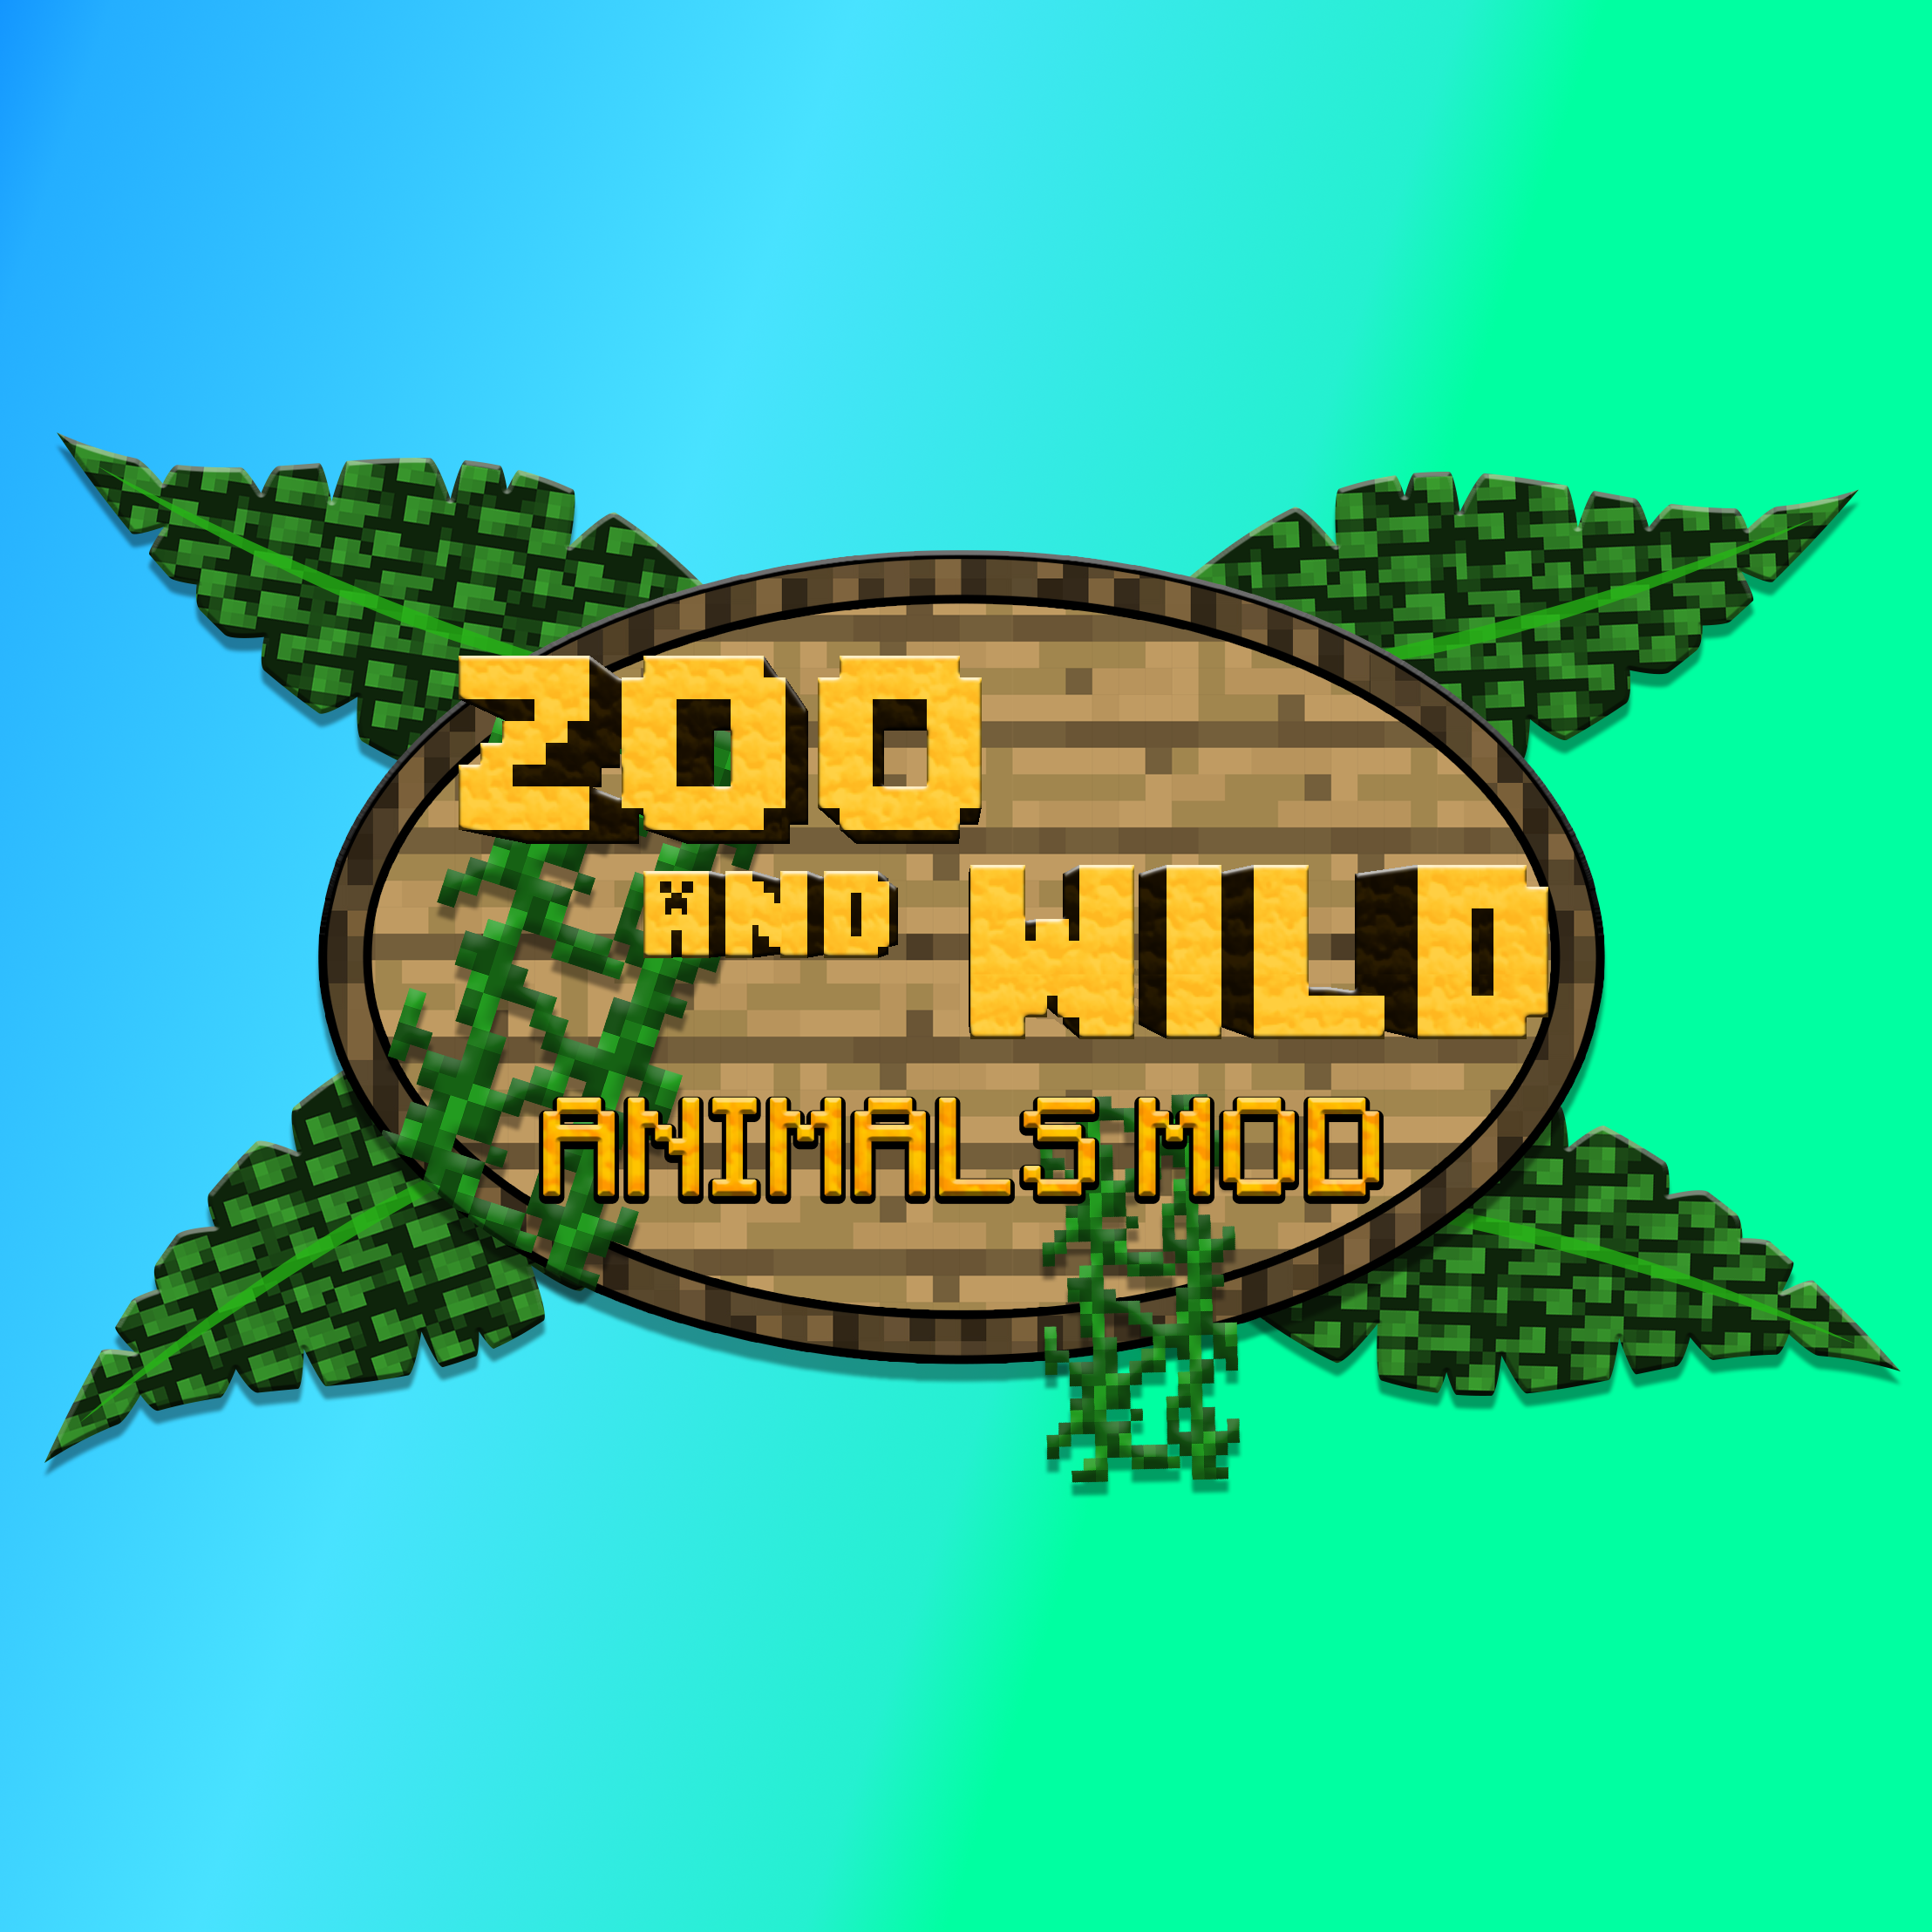 zawa - 1 5 2 (1 8) beta - Files - Zoo & Wild Animals Classic - Mods